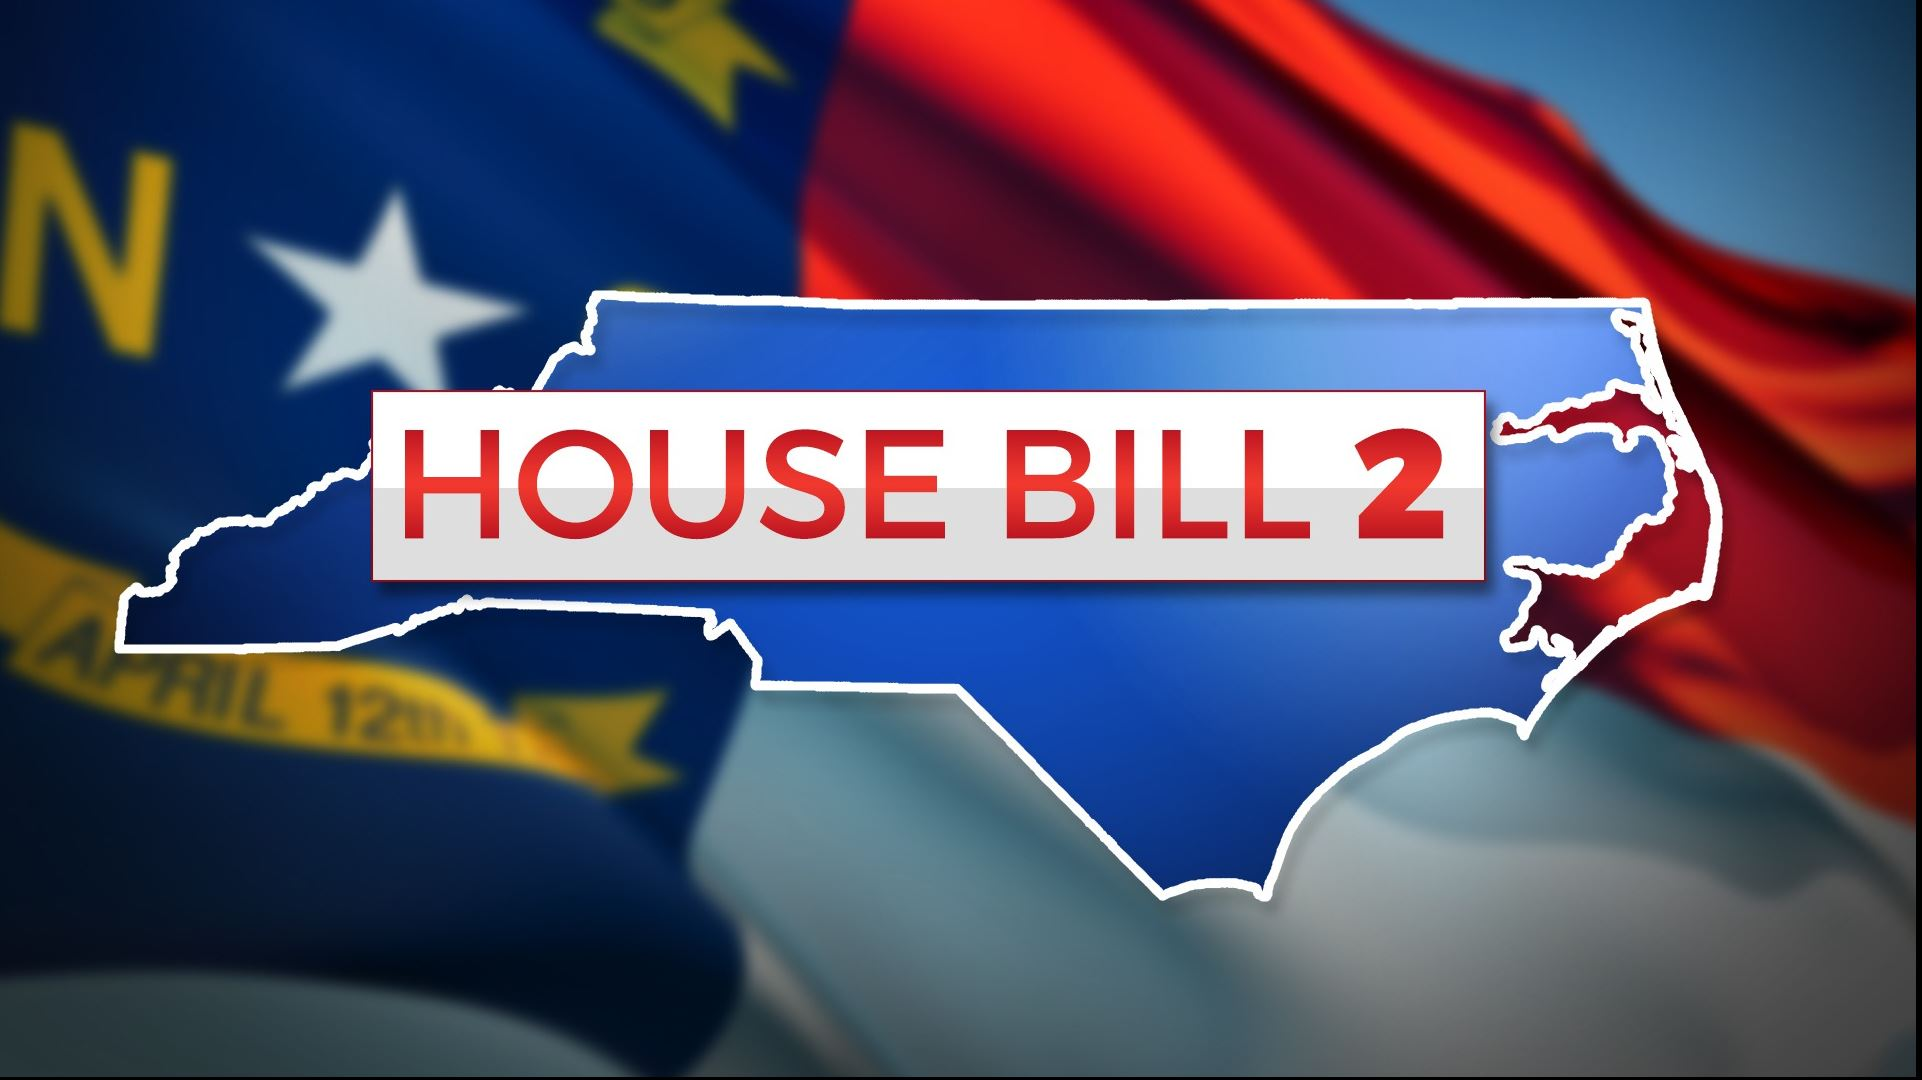 9oys-politics-house-bill-2_274641